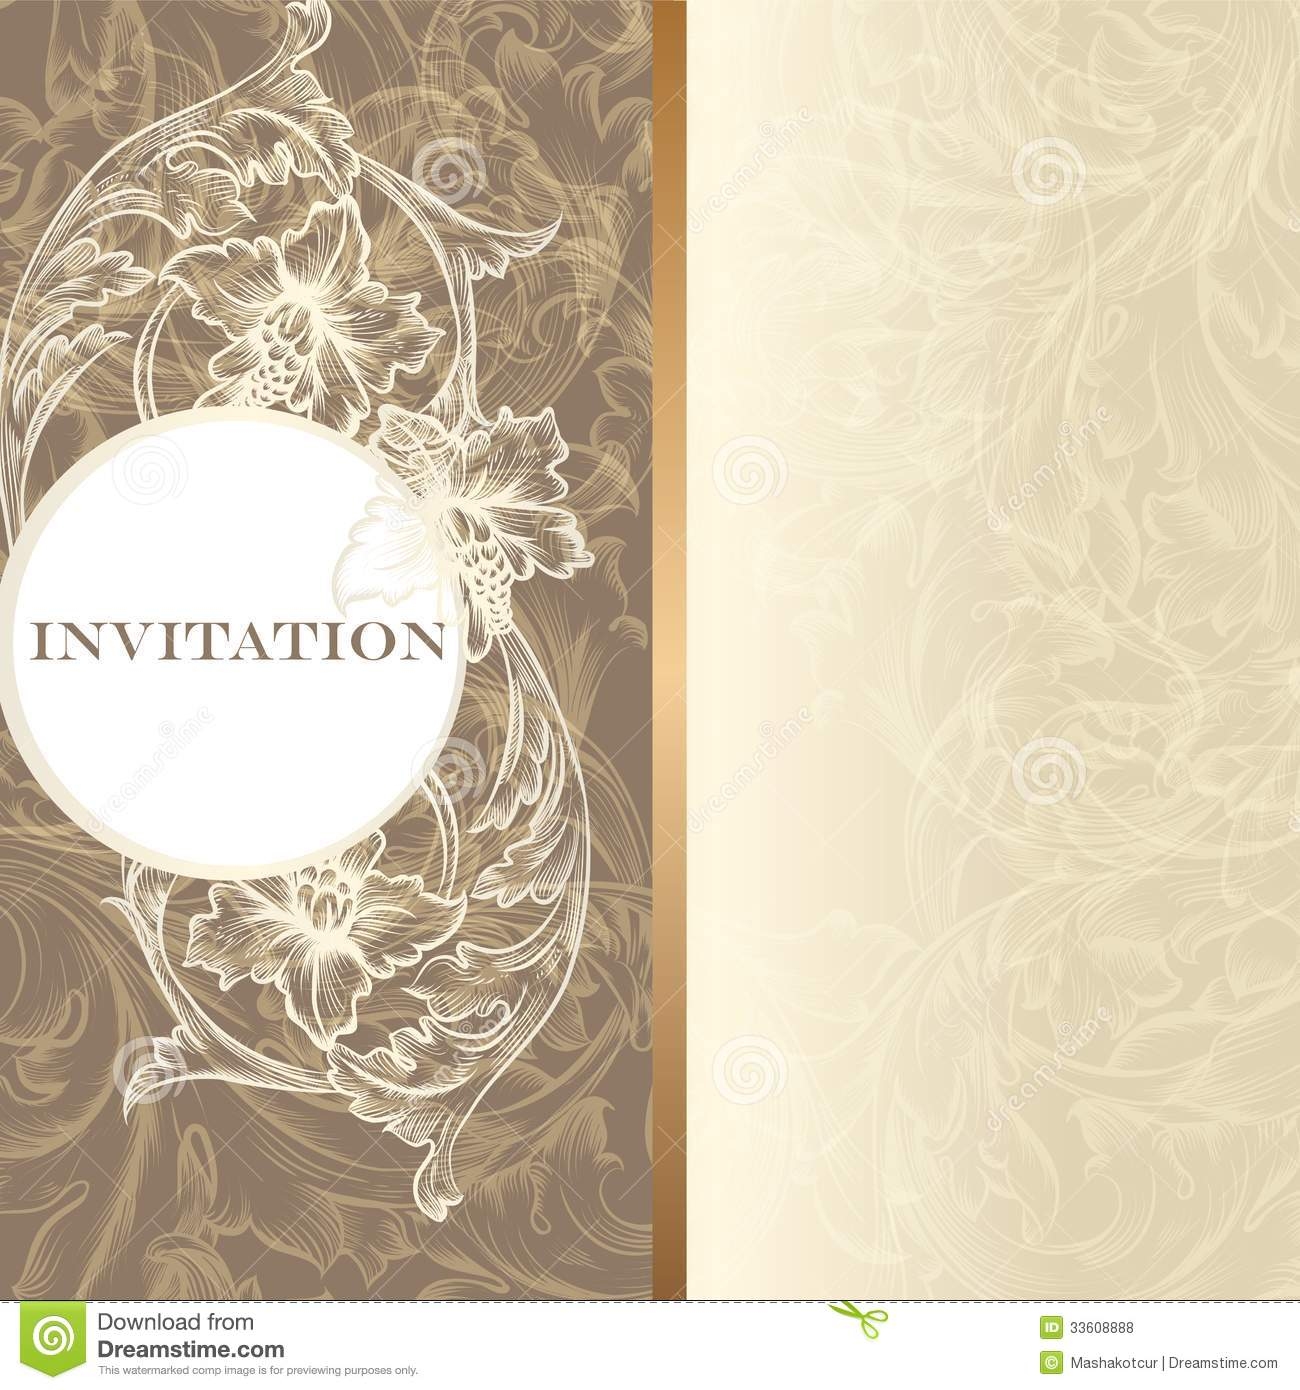 luxury invitation card in vintage style royalty free stock